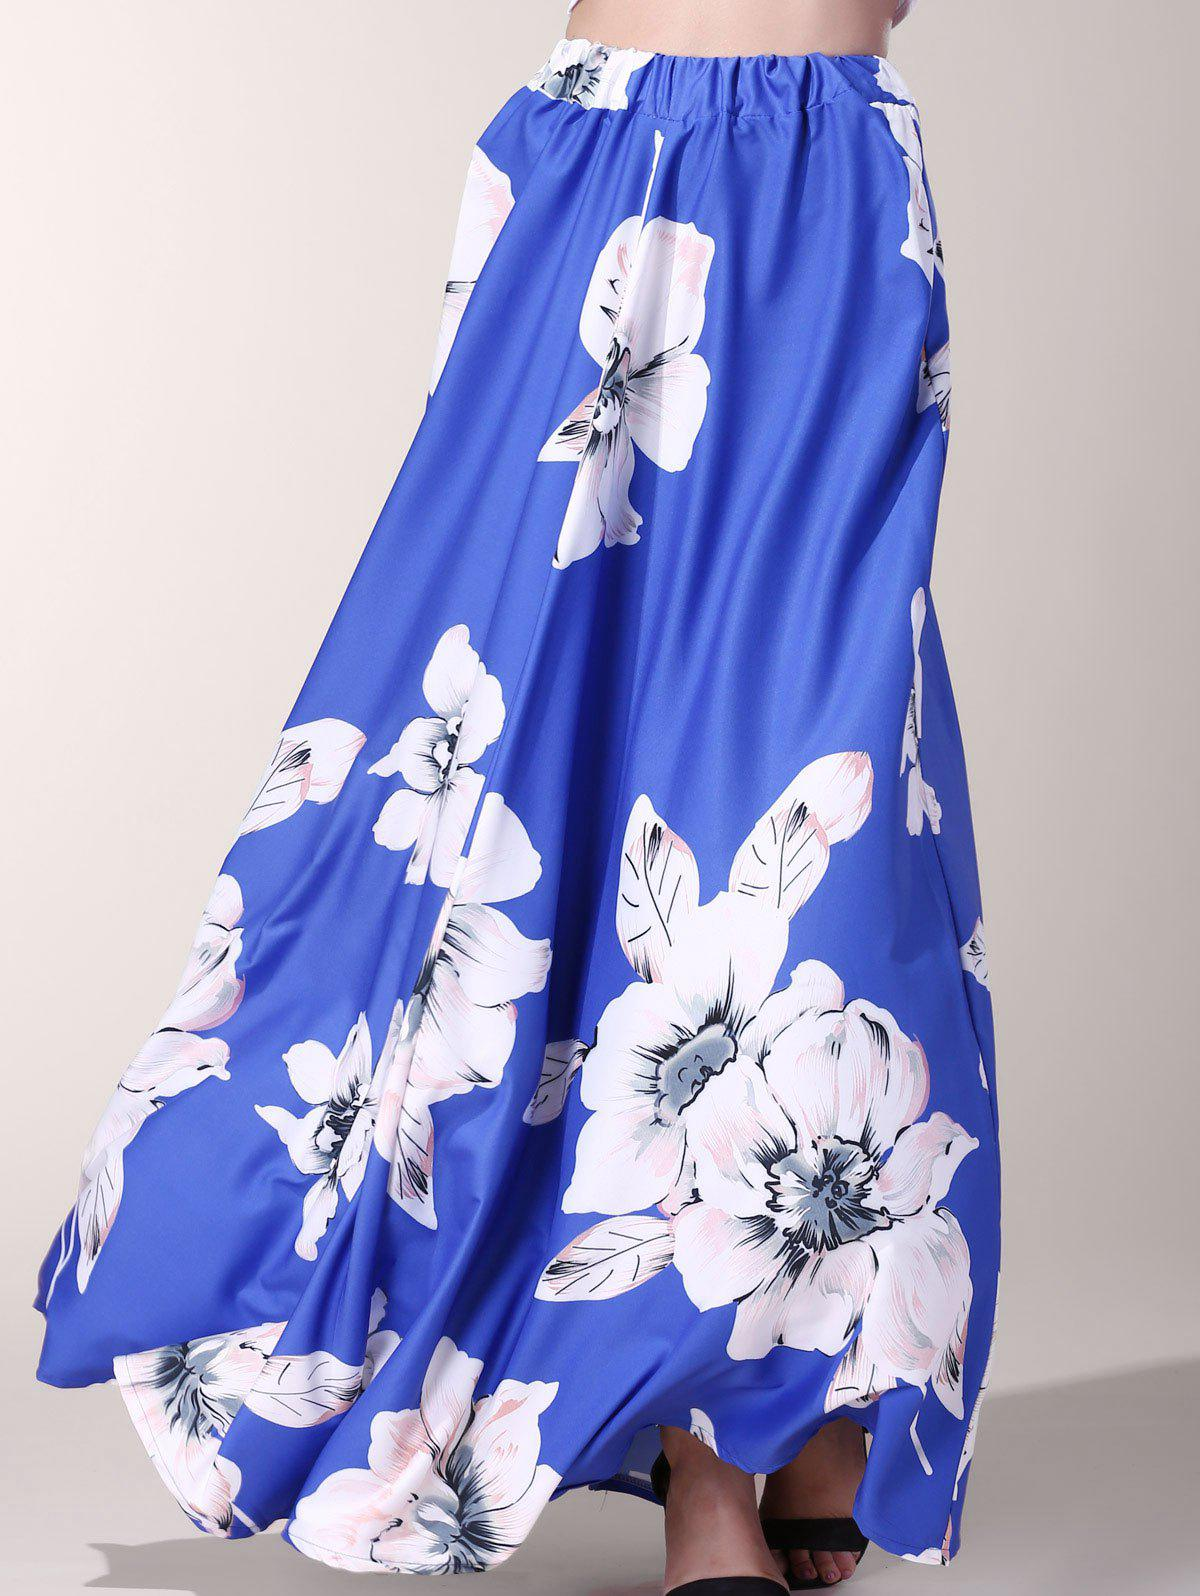 Stylish Floor-Length Flower Print Skirt For Women - BLUE S